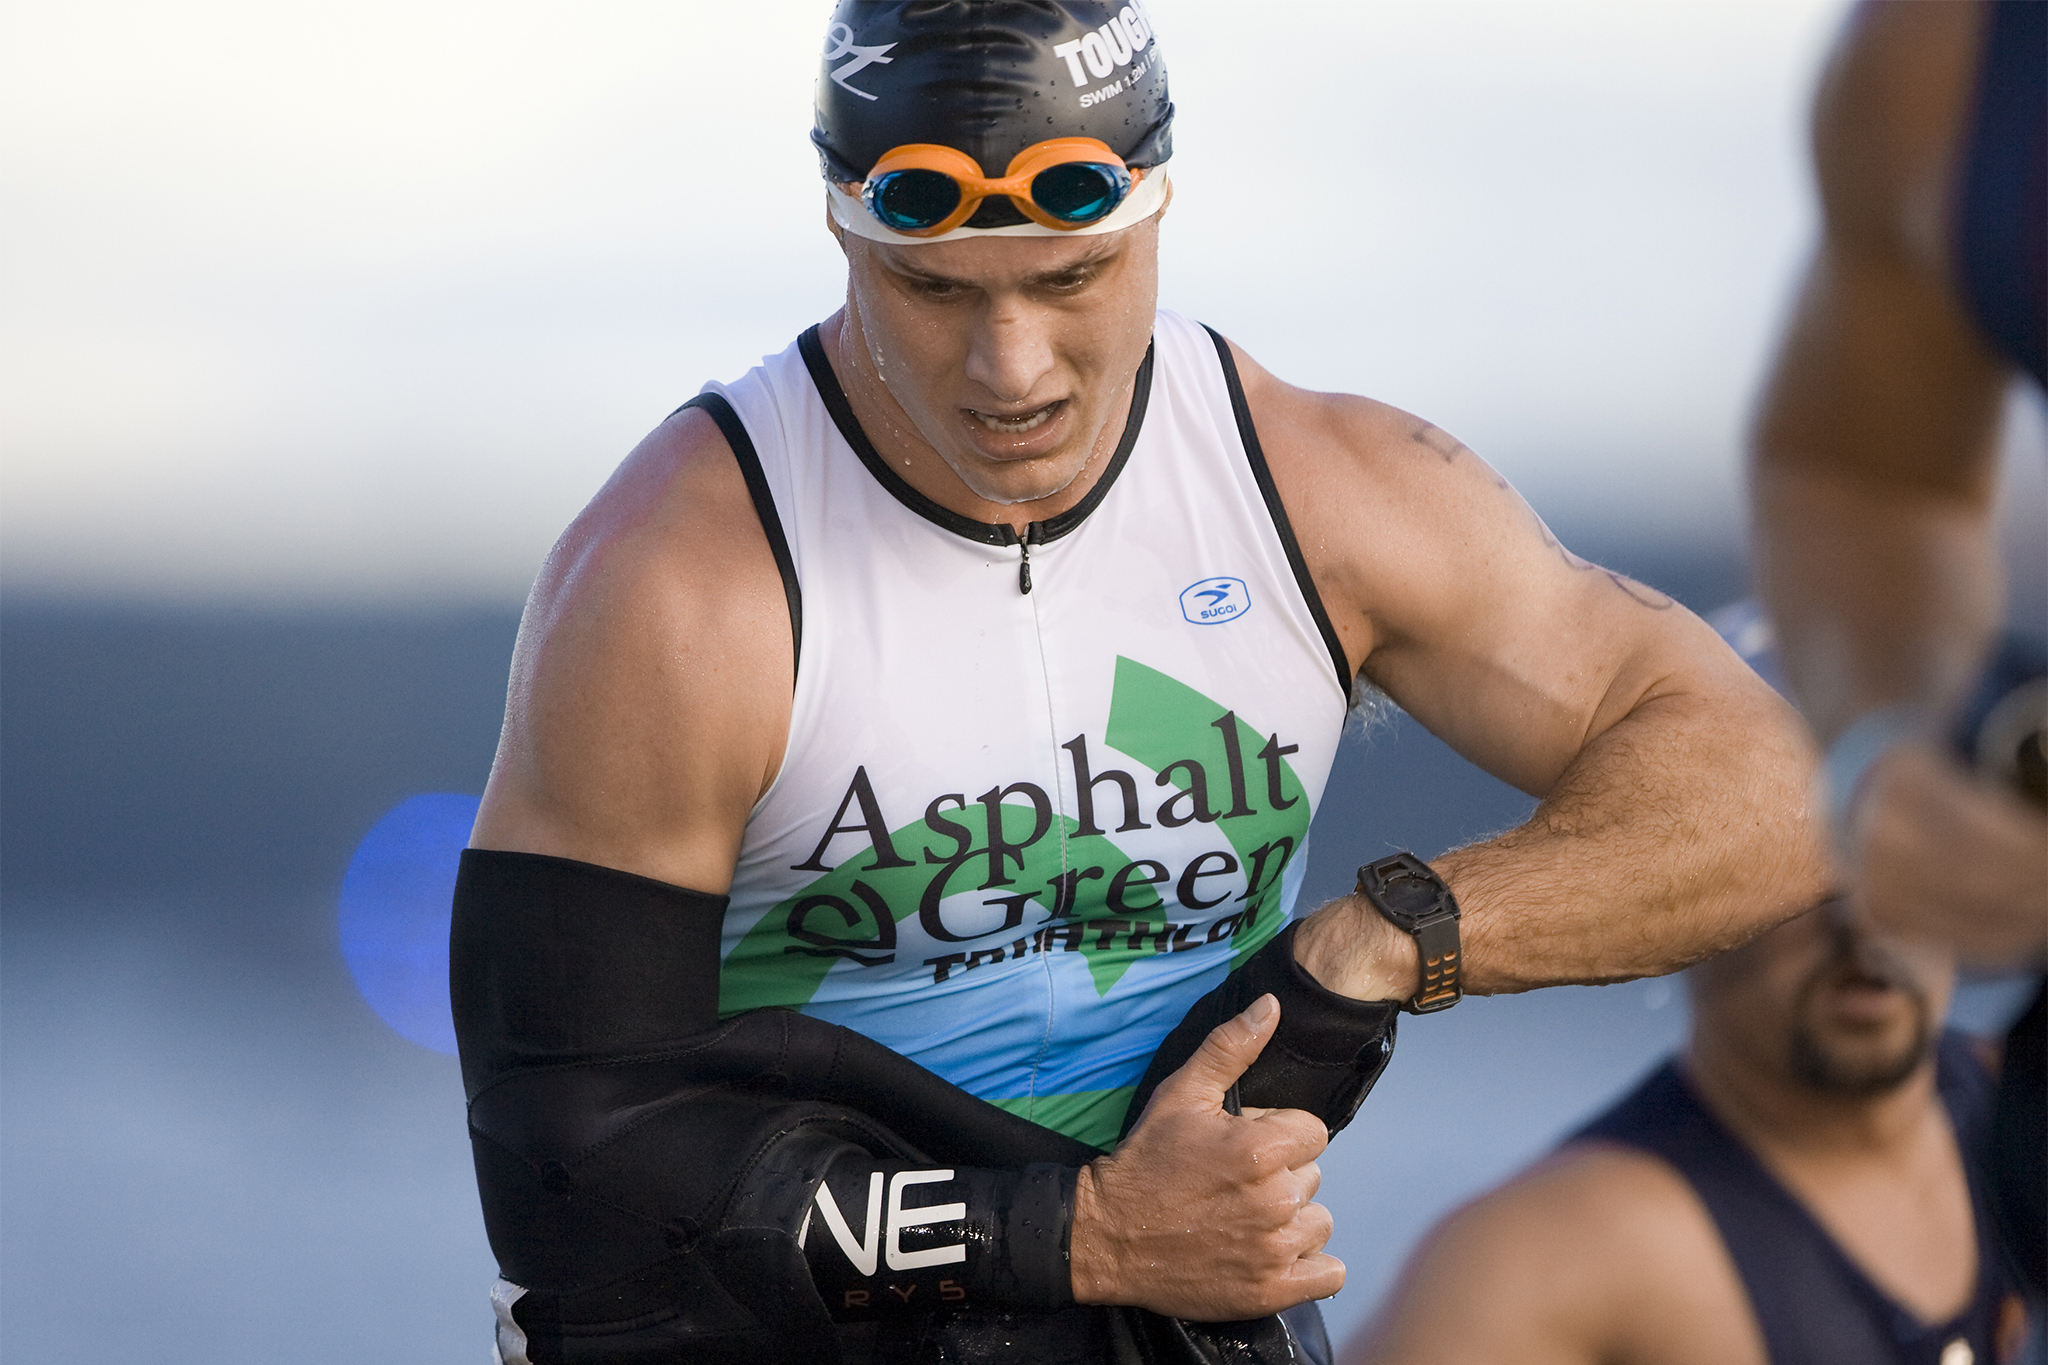 Asphalt Green Triathlon